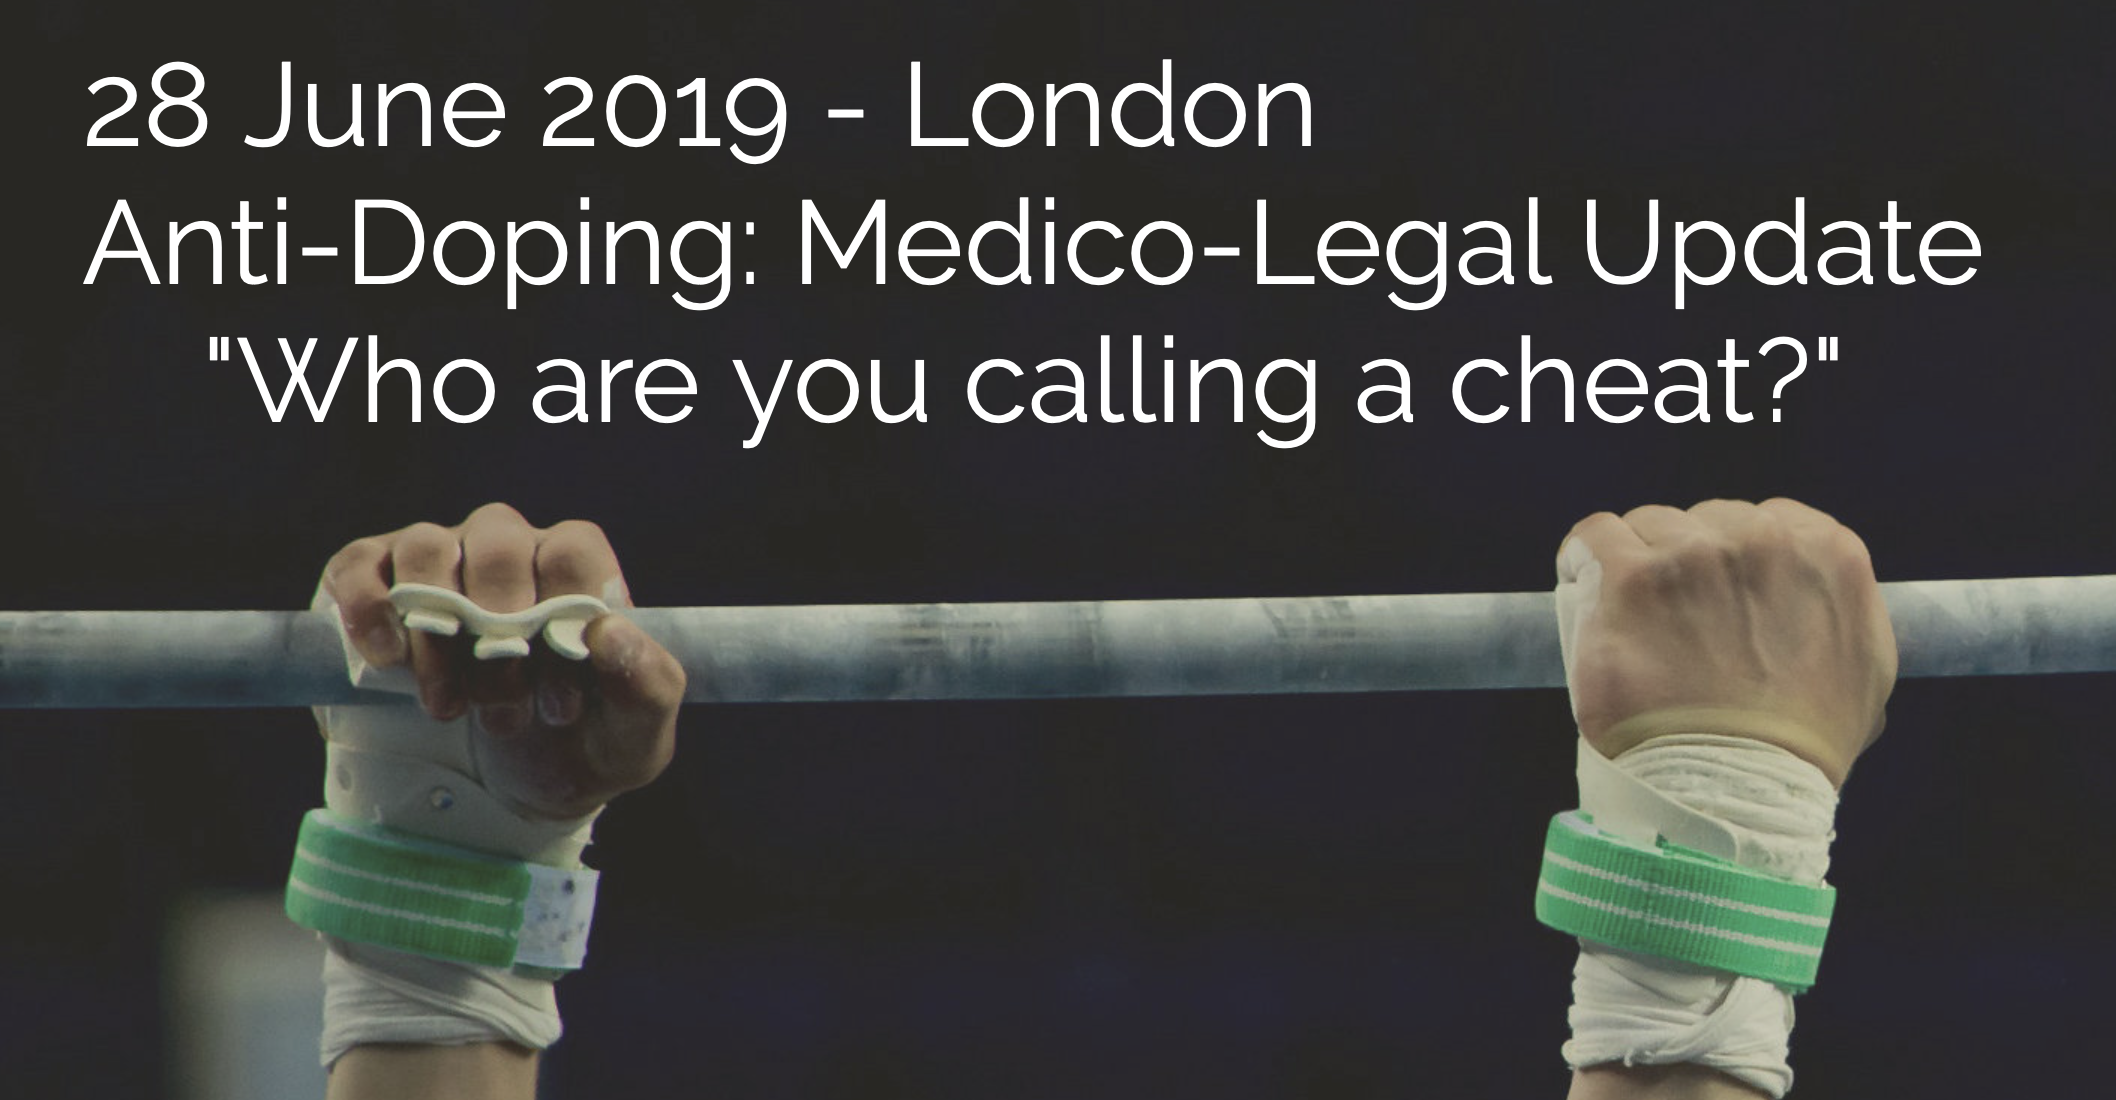 """Who are you calling a cheat?!"""" 